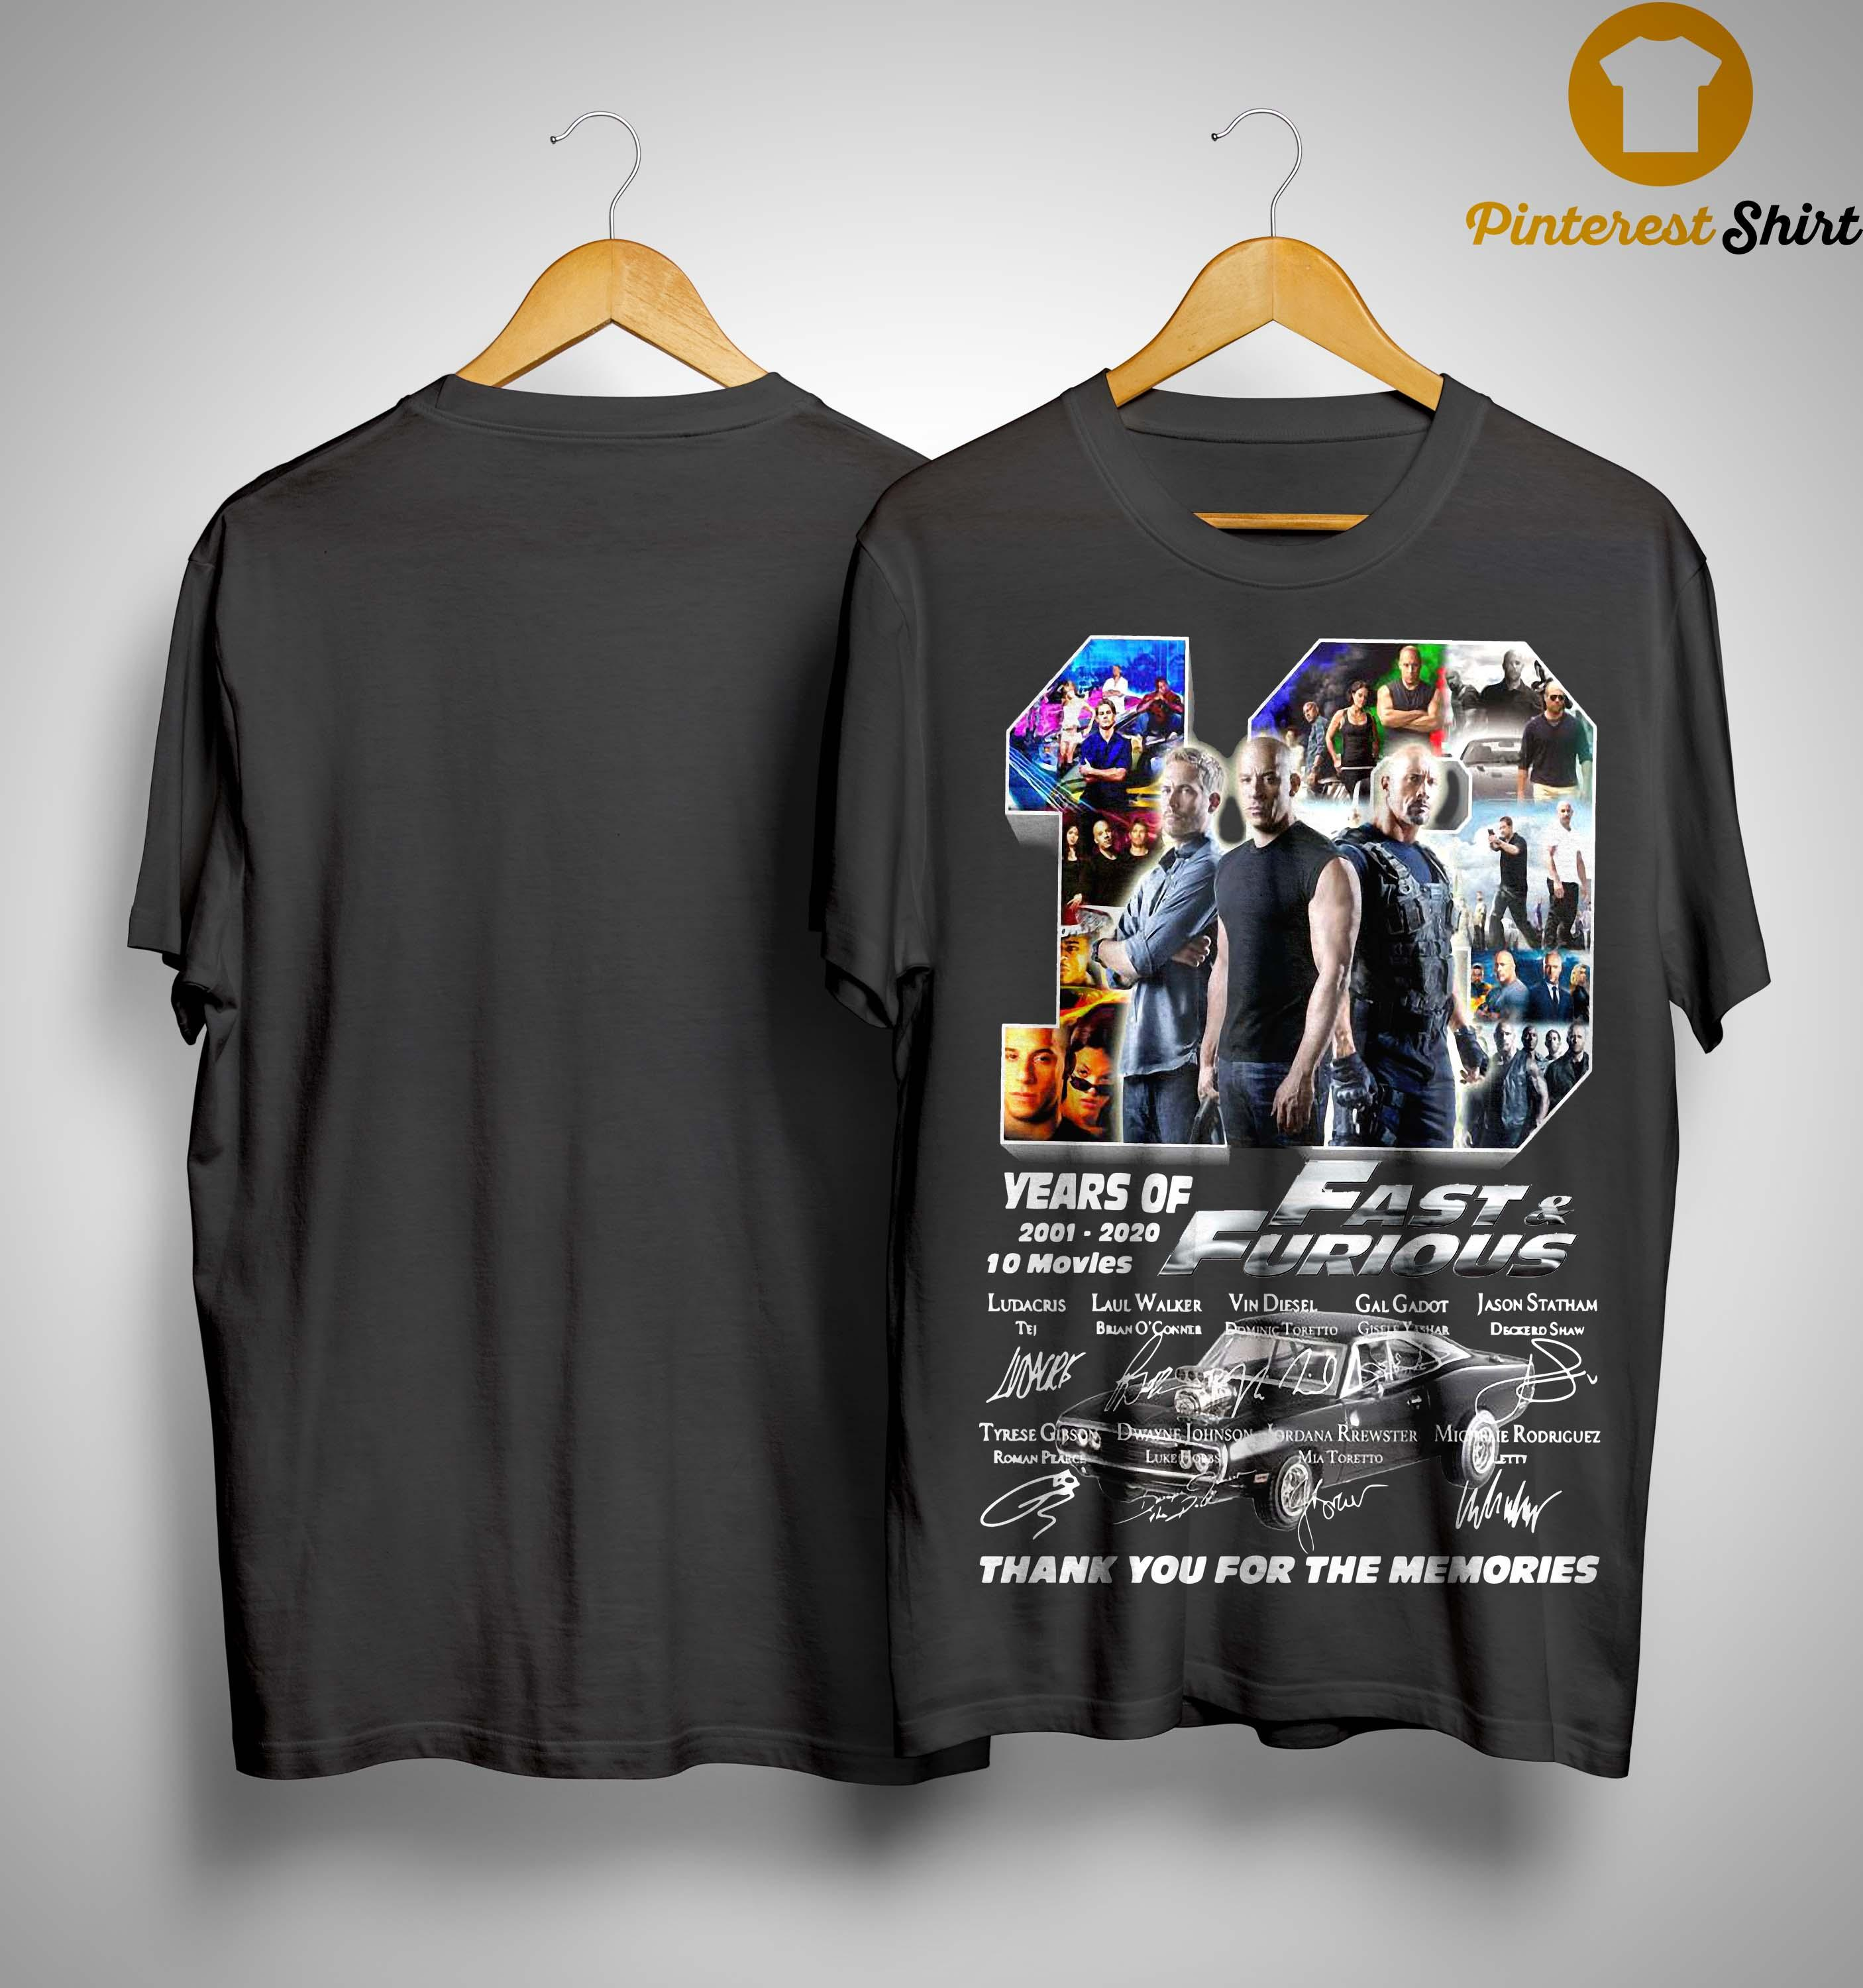 19 Years Of Fast And Furious 2001 2020 10 Movies Shirt